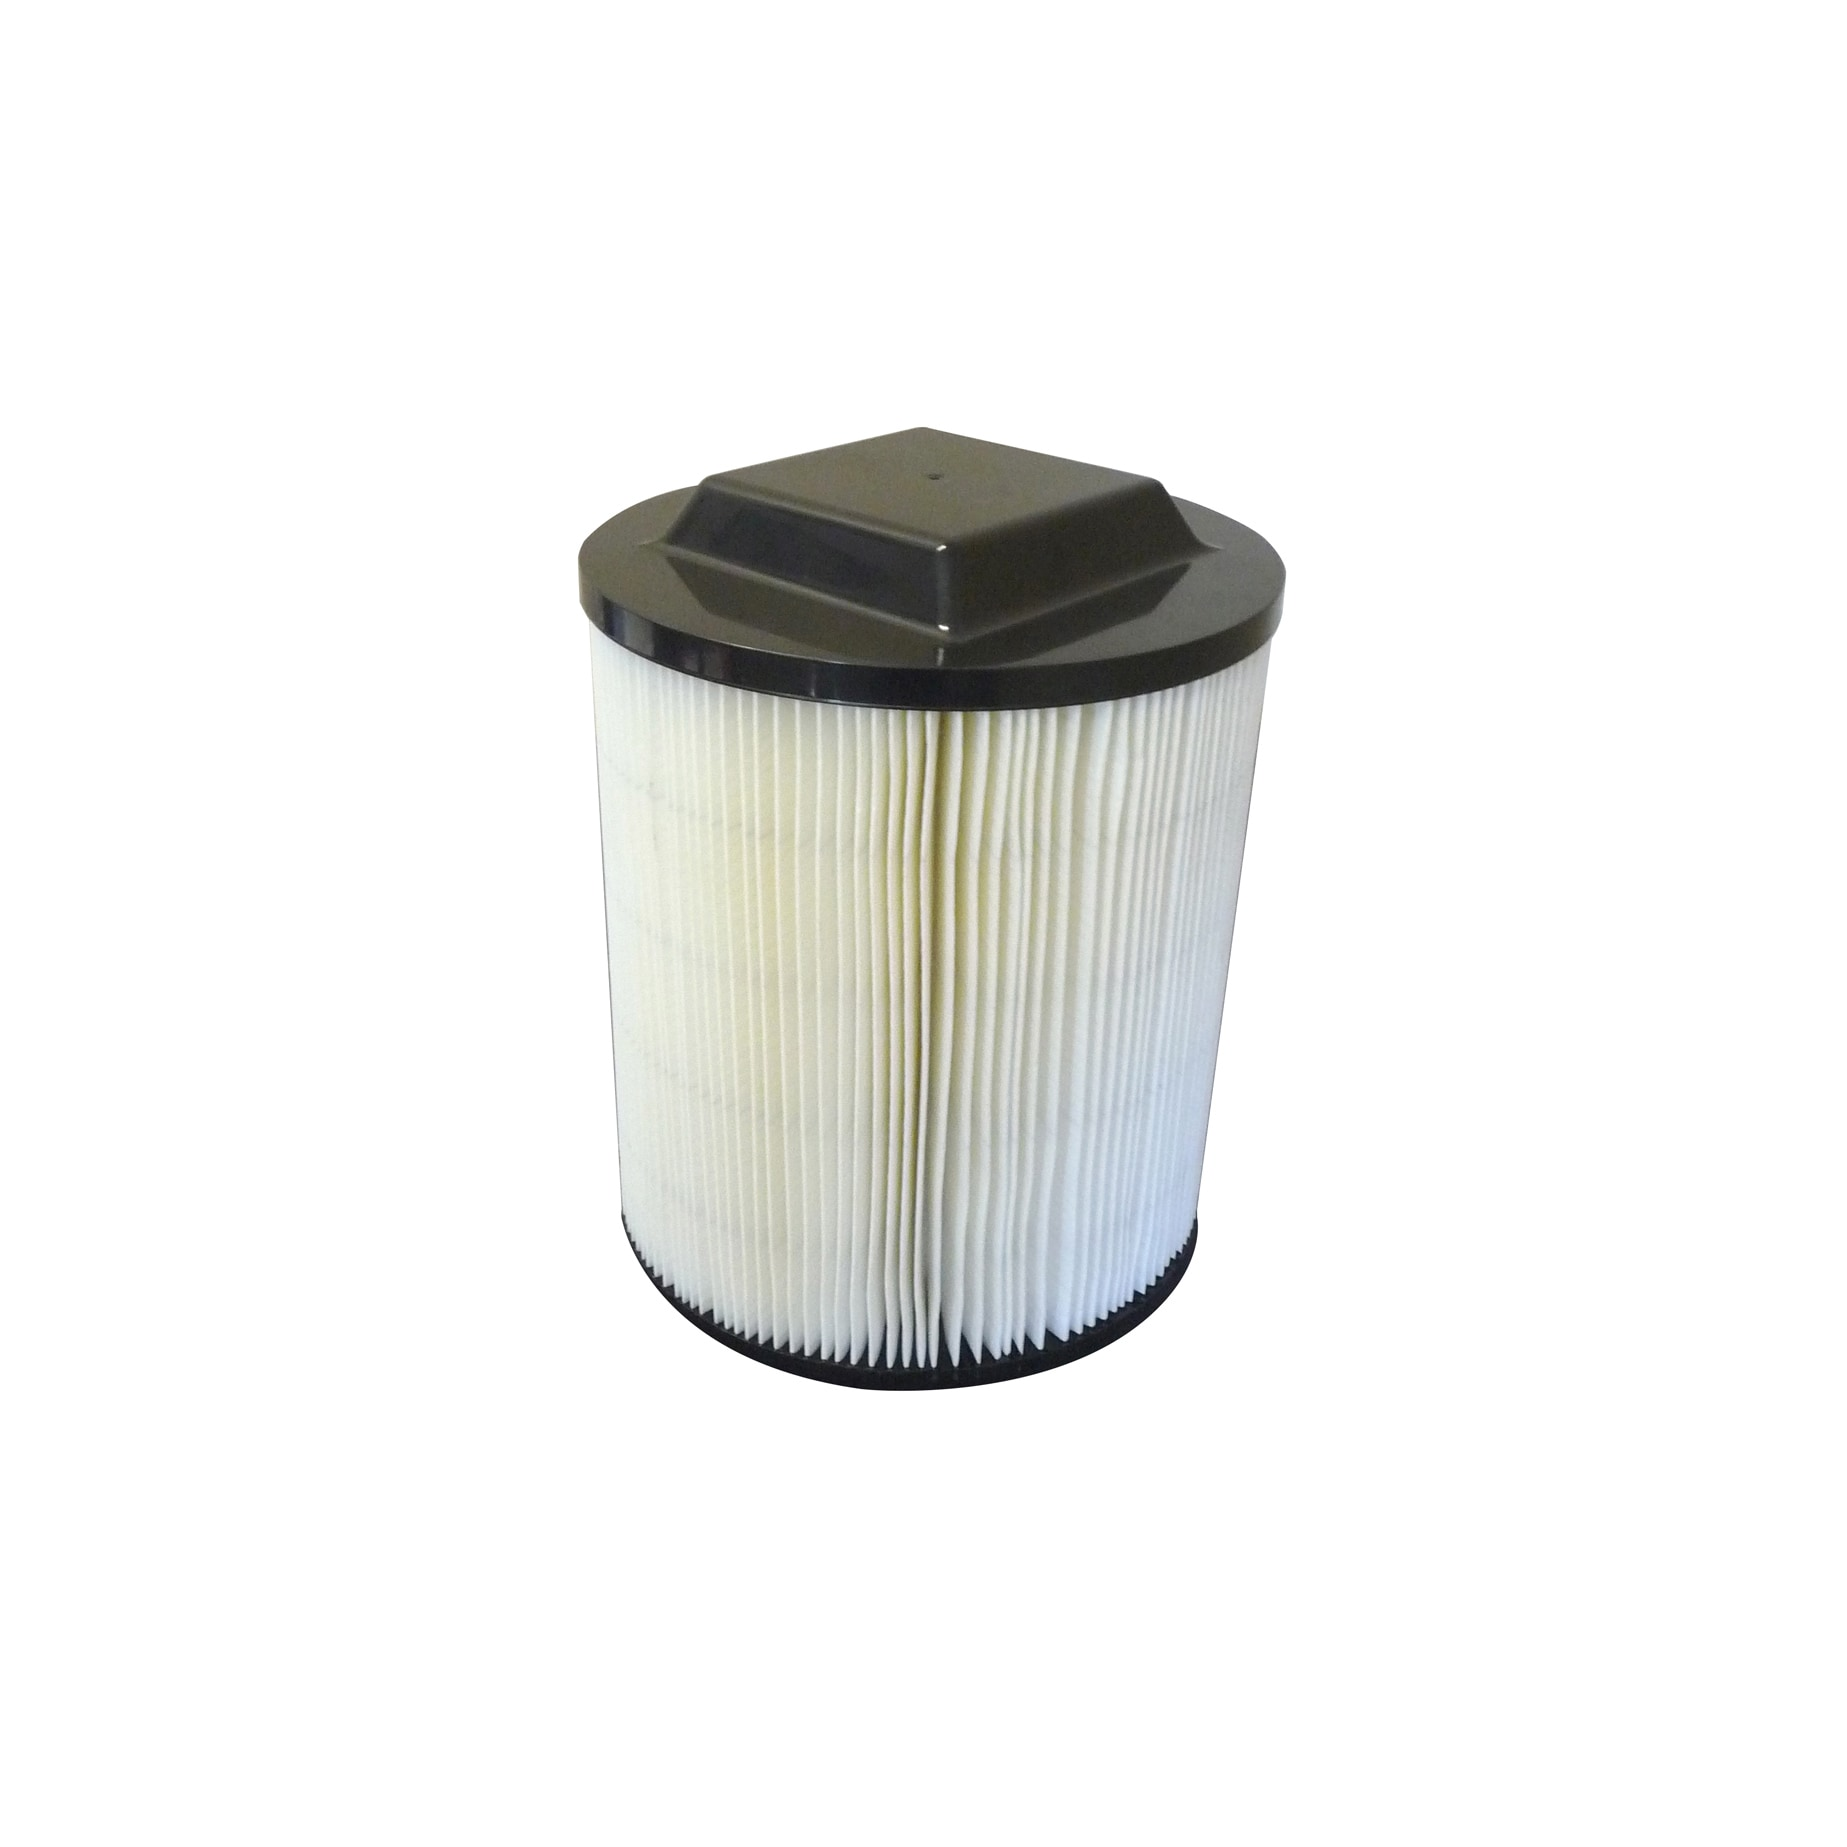 Crucial Replacement Cartridge Filter Fits Craftsman Wet/D...